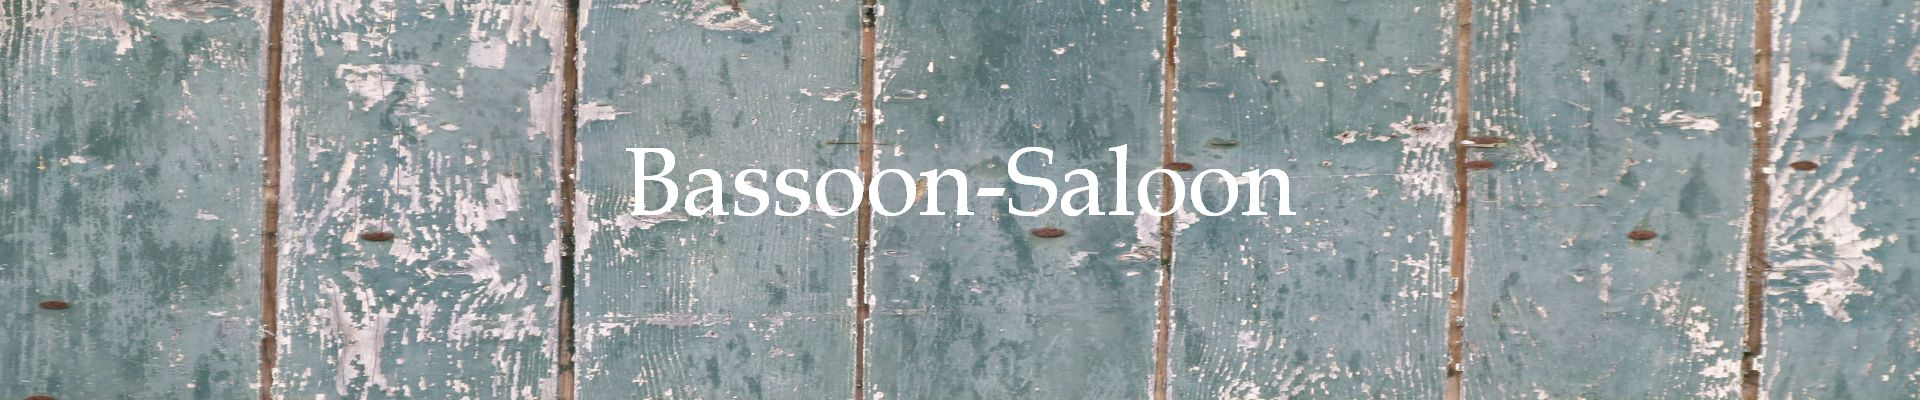 Bassoon-Saloon